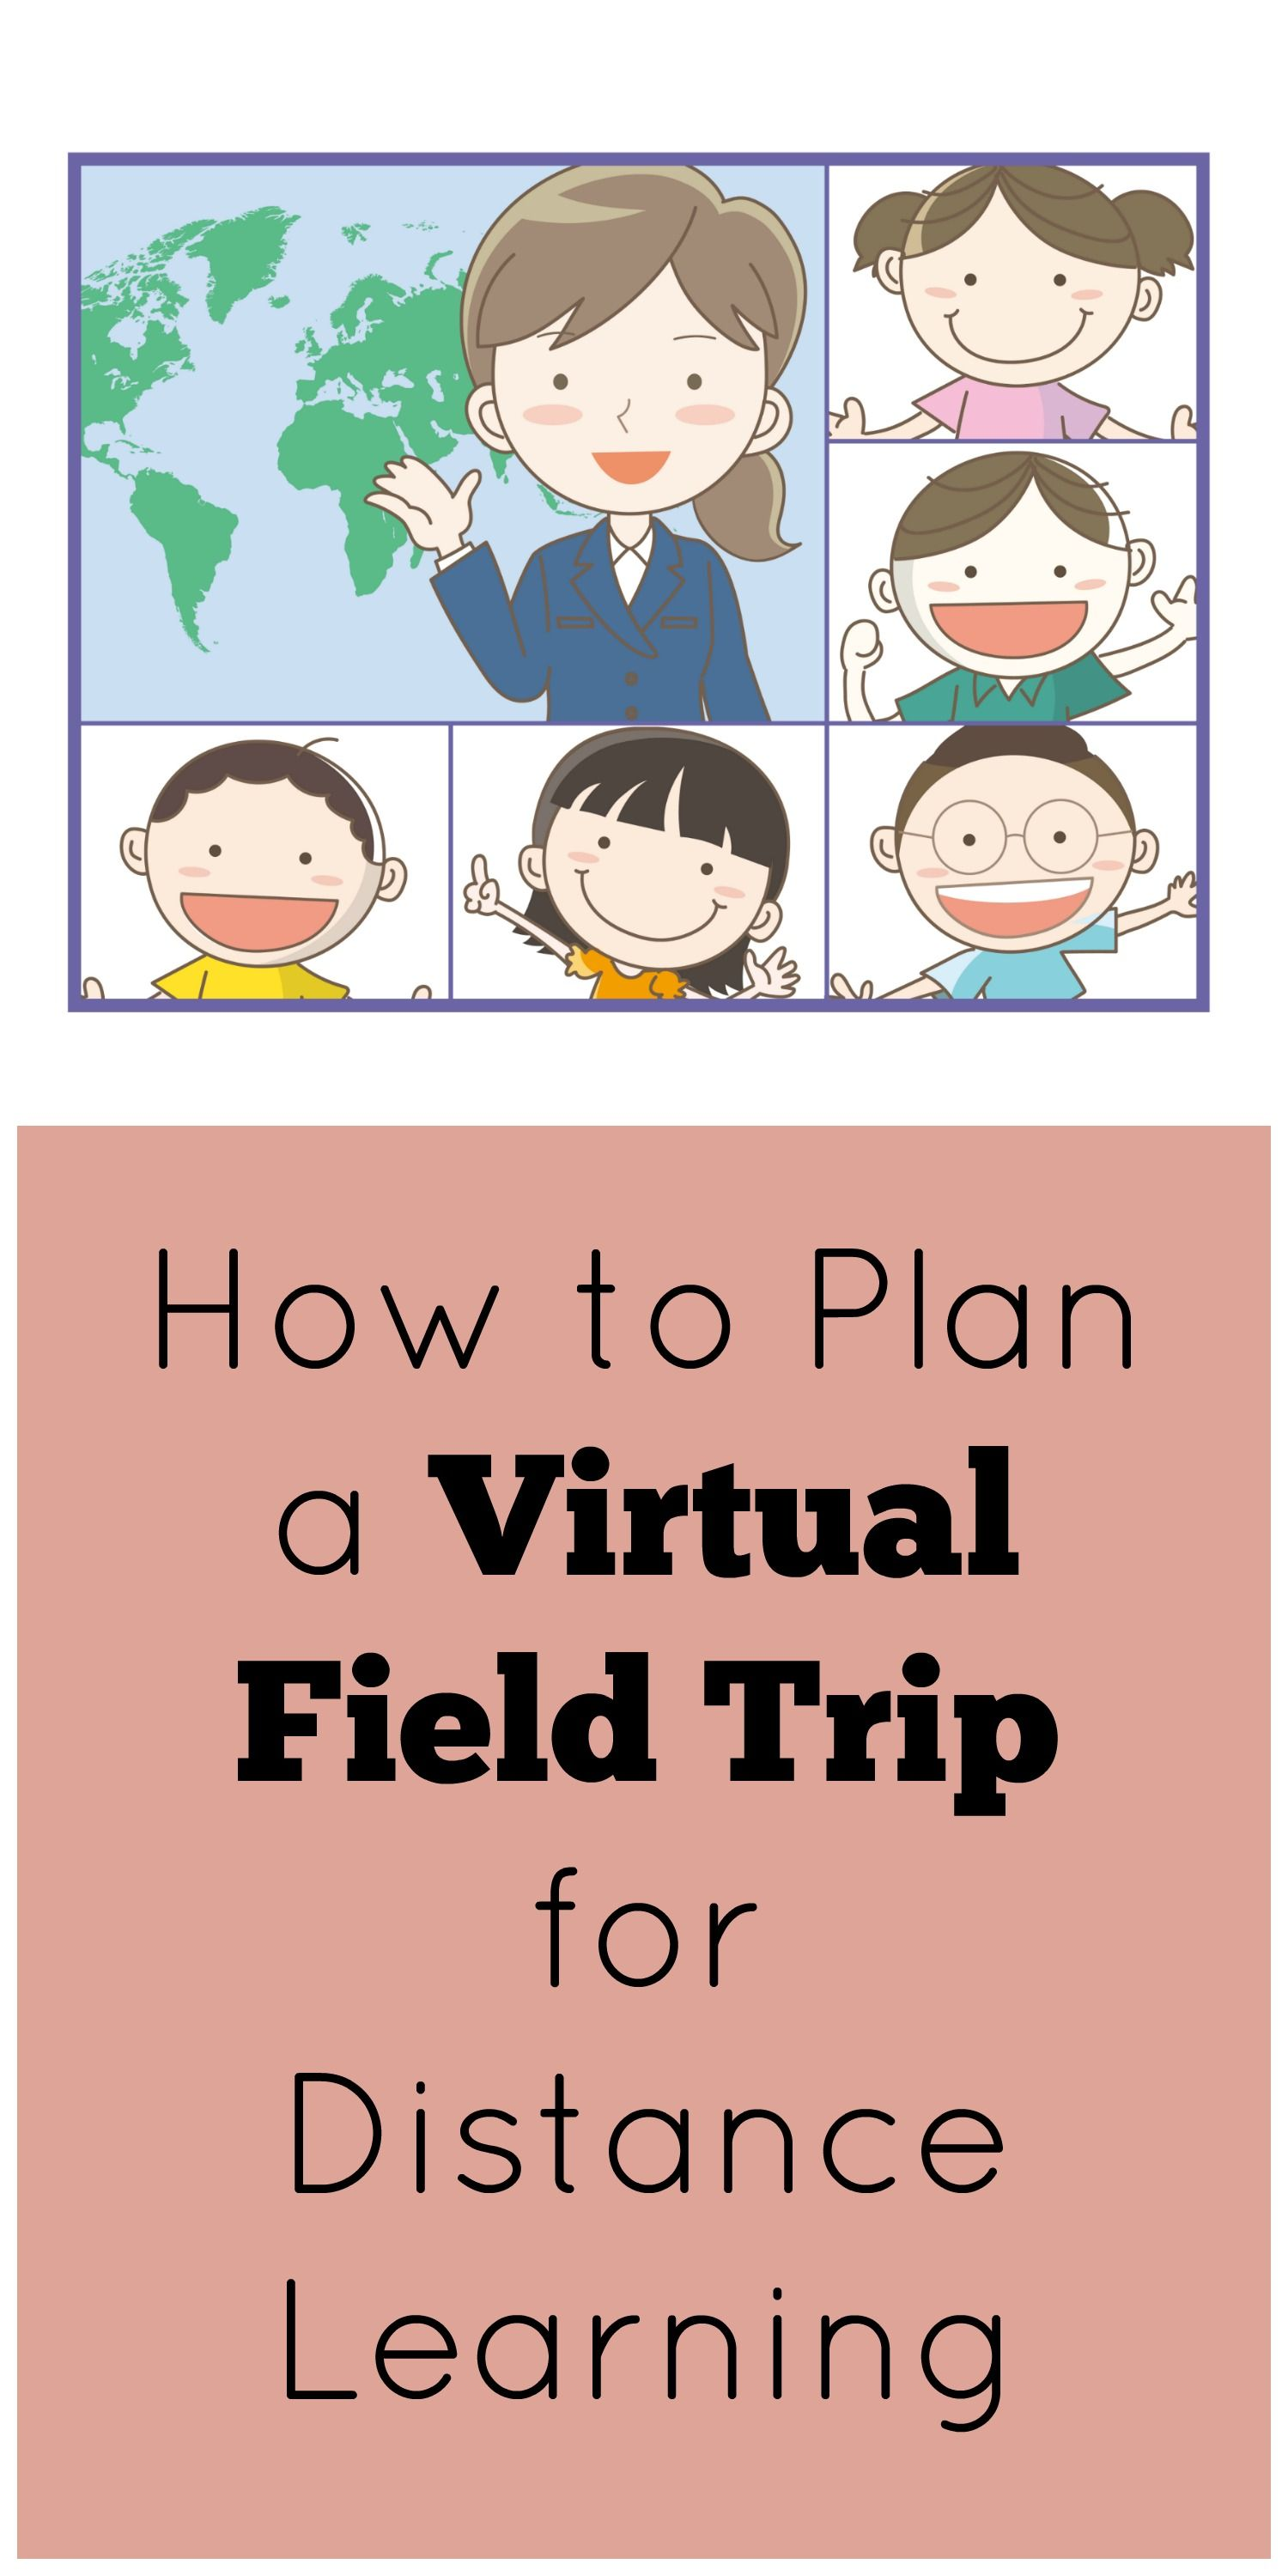 How To Plan A Virtual Field Trip For Distance Learning In